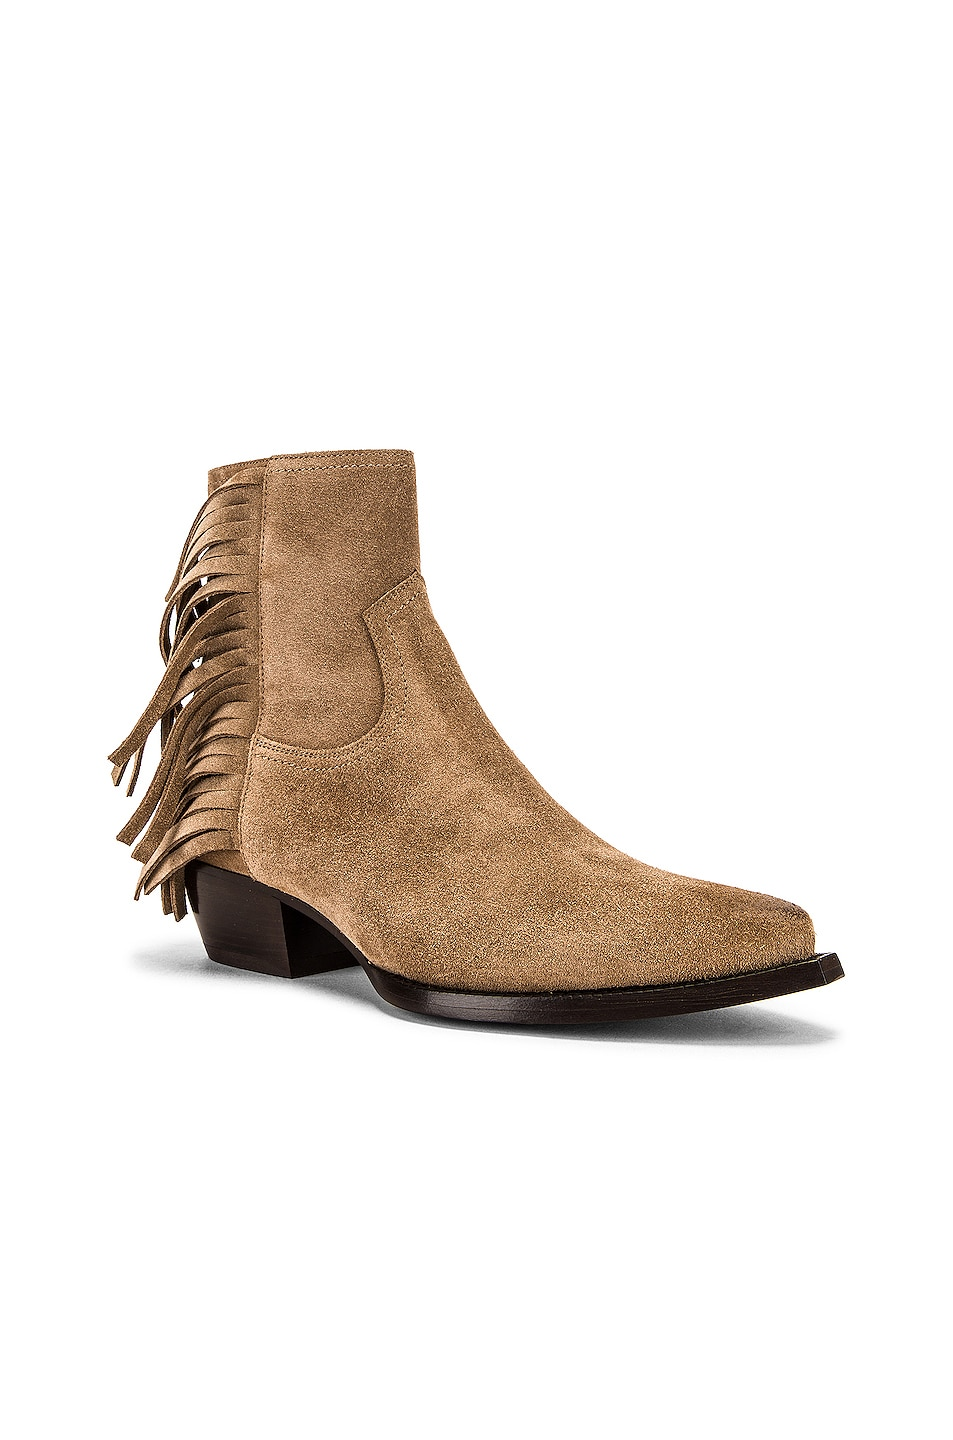 Image 2 of Saint Laurent Lukas Fringe Boots in New Sigaro